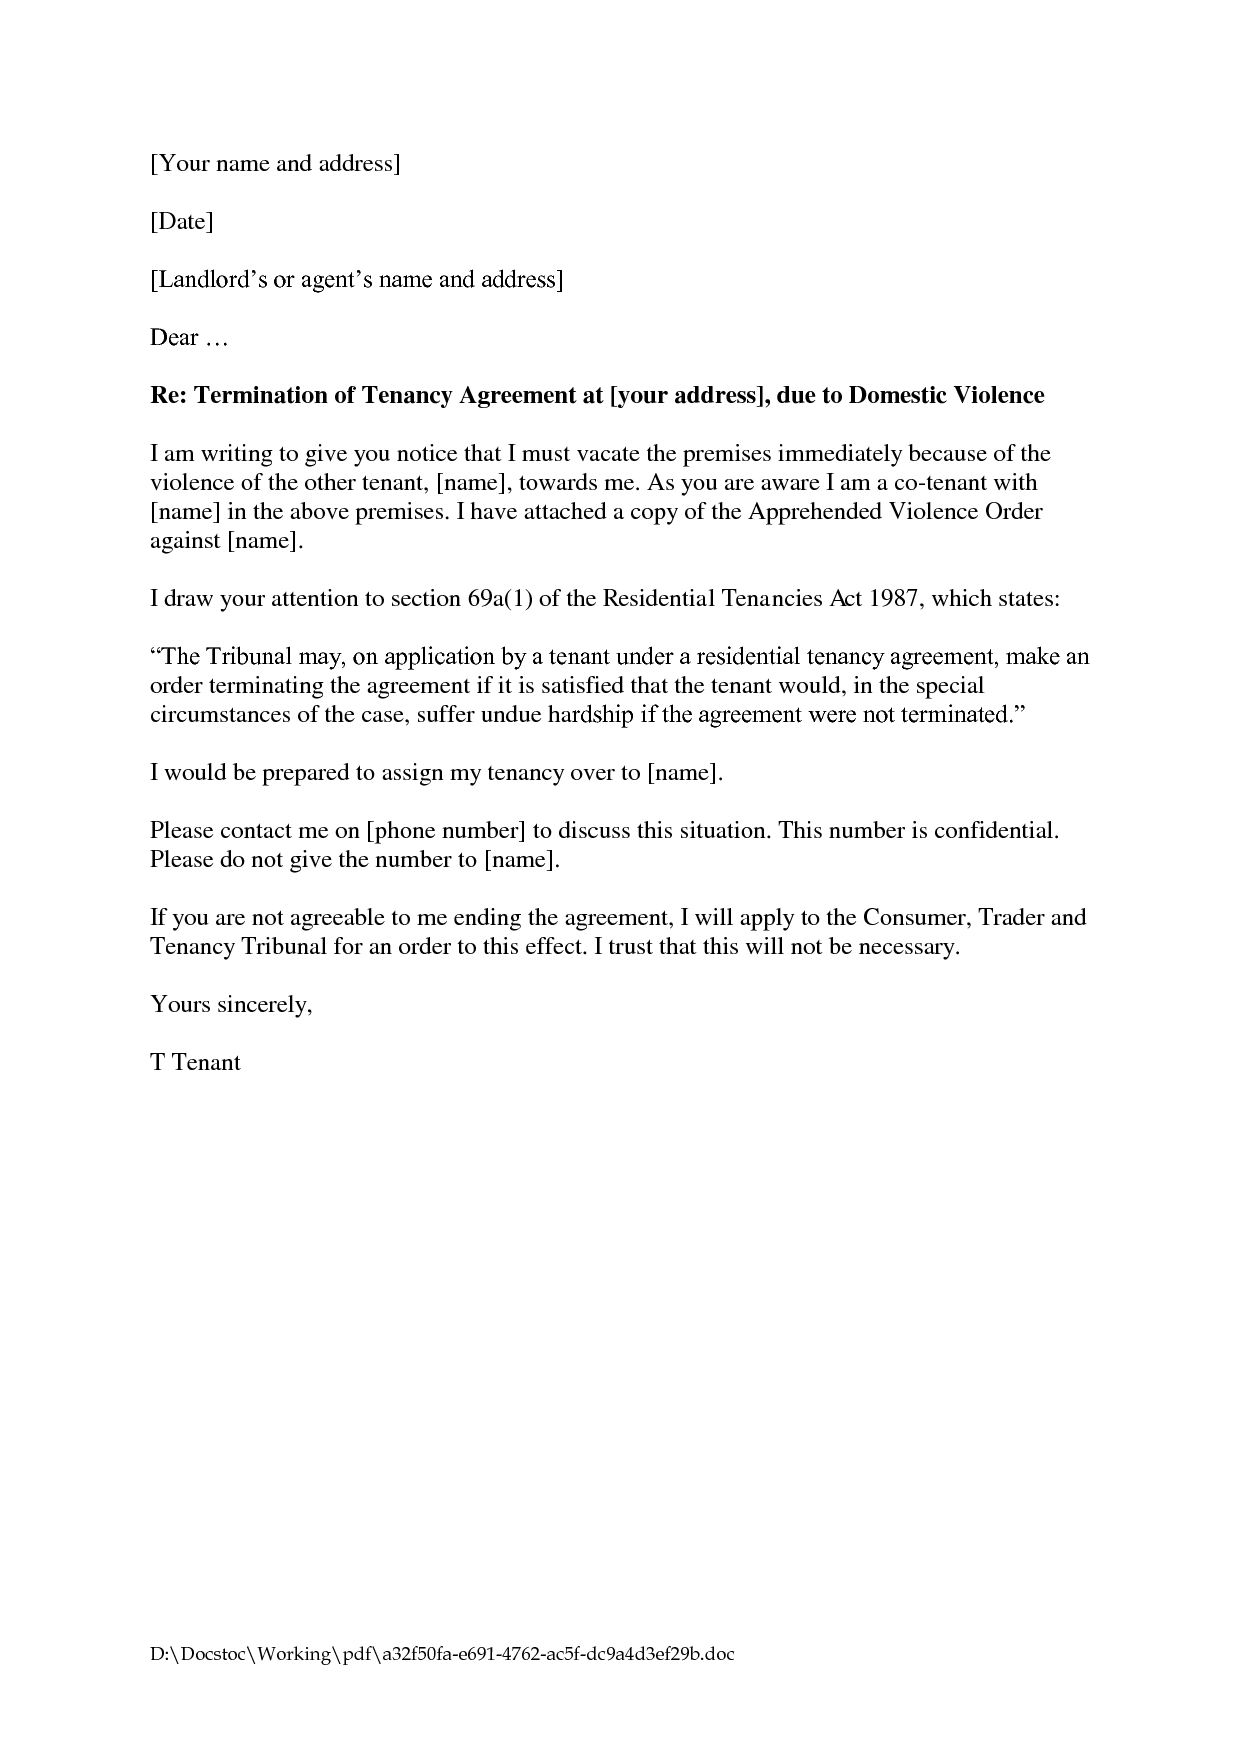 Lease Termination Letter to Tenant Template Samples | Letter ...